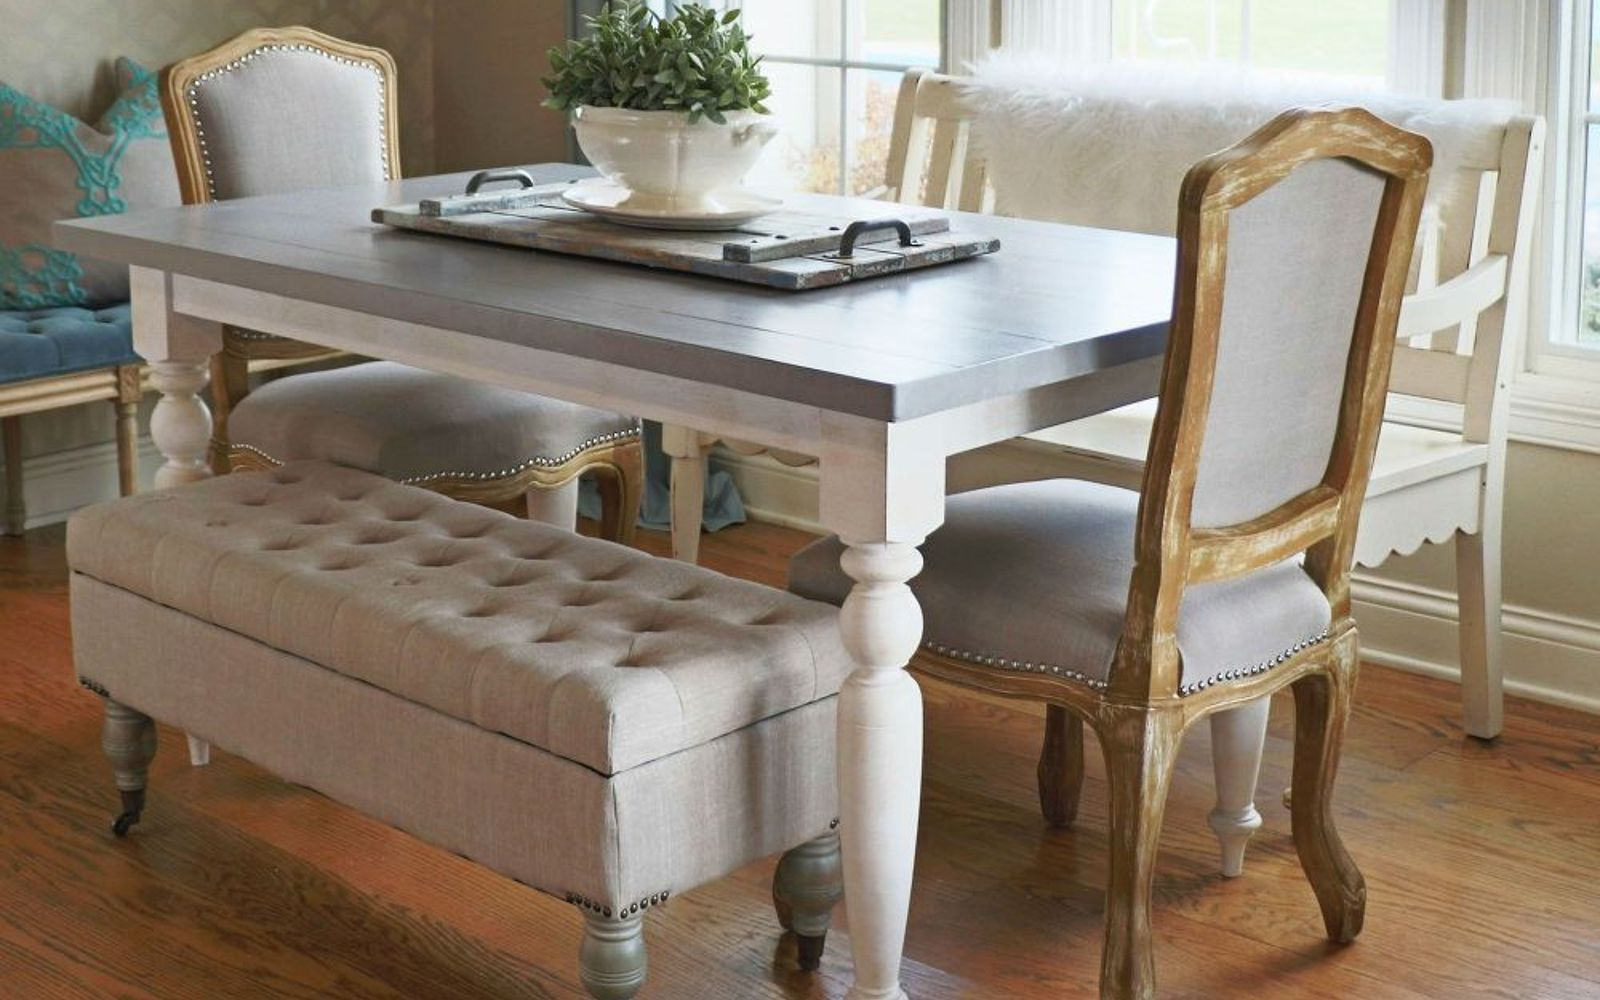 s 13 gorgeous ways to bring your worn kitchen table back to life, kitchen design, painted furniture, Switch out the legs for a different style